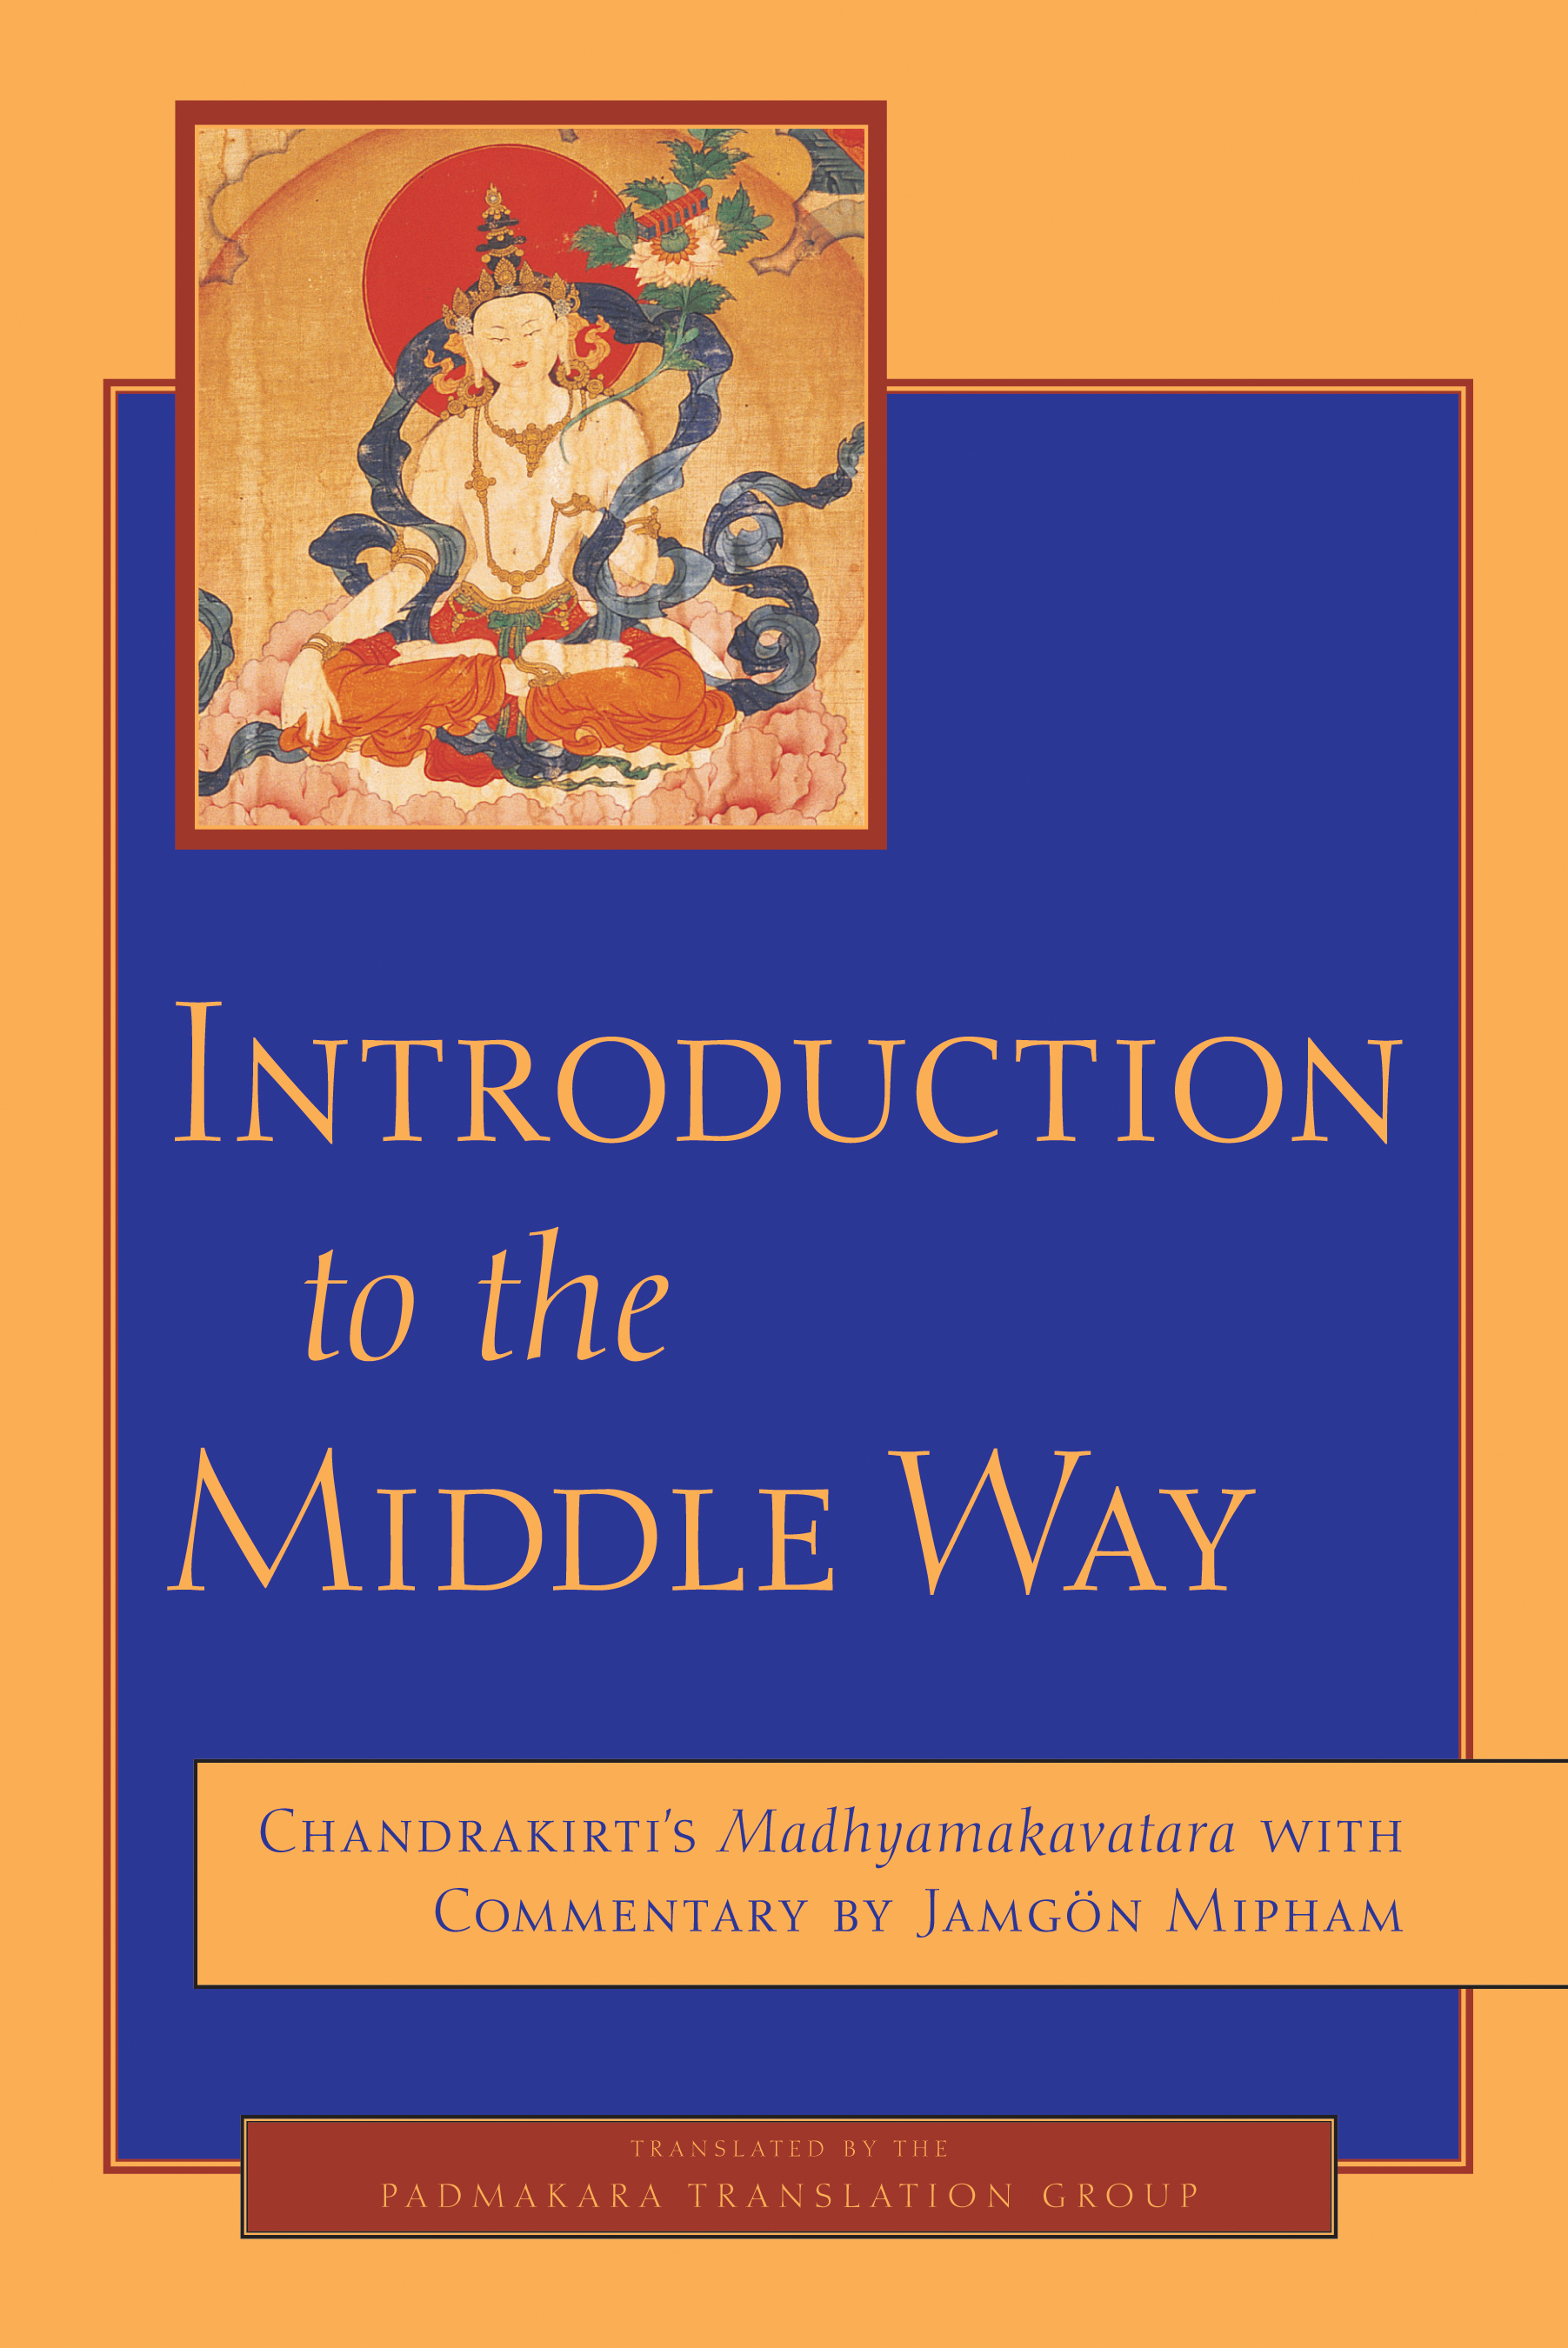 Introduction to the Middle Way: Chandrakirti's <i>Madhyamakavatara</i> with Commentary by Ju Mipham